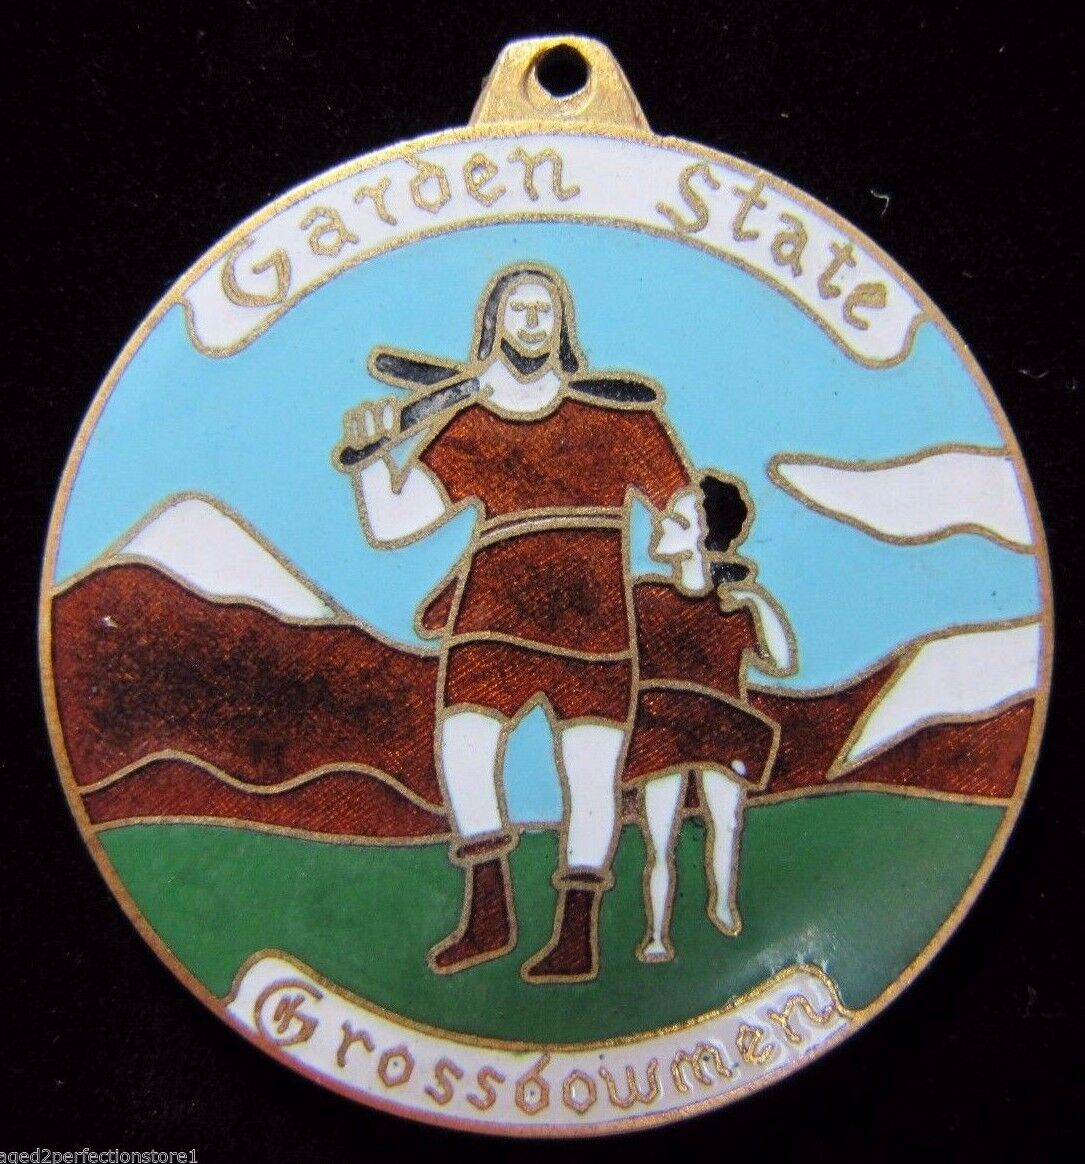 Vtg GARDEN STATE CROSSBOWMEN ARCHERY Medallion enamel ornate bow arrow medal